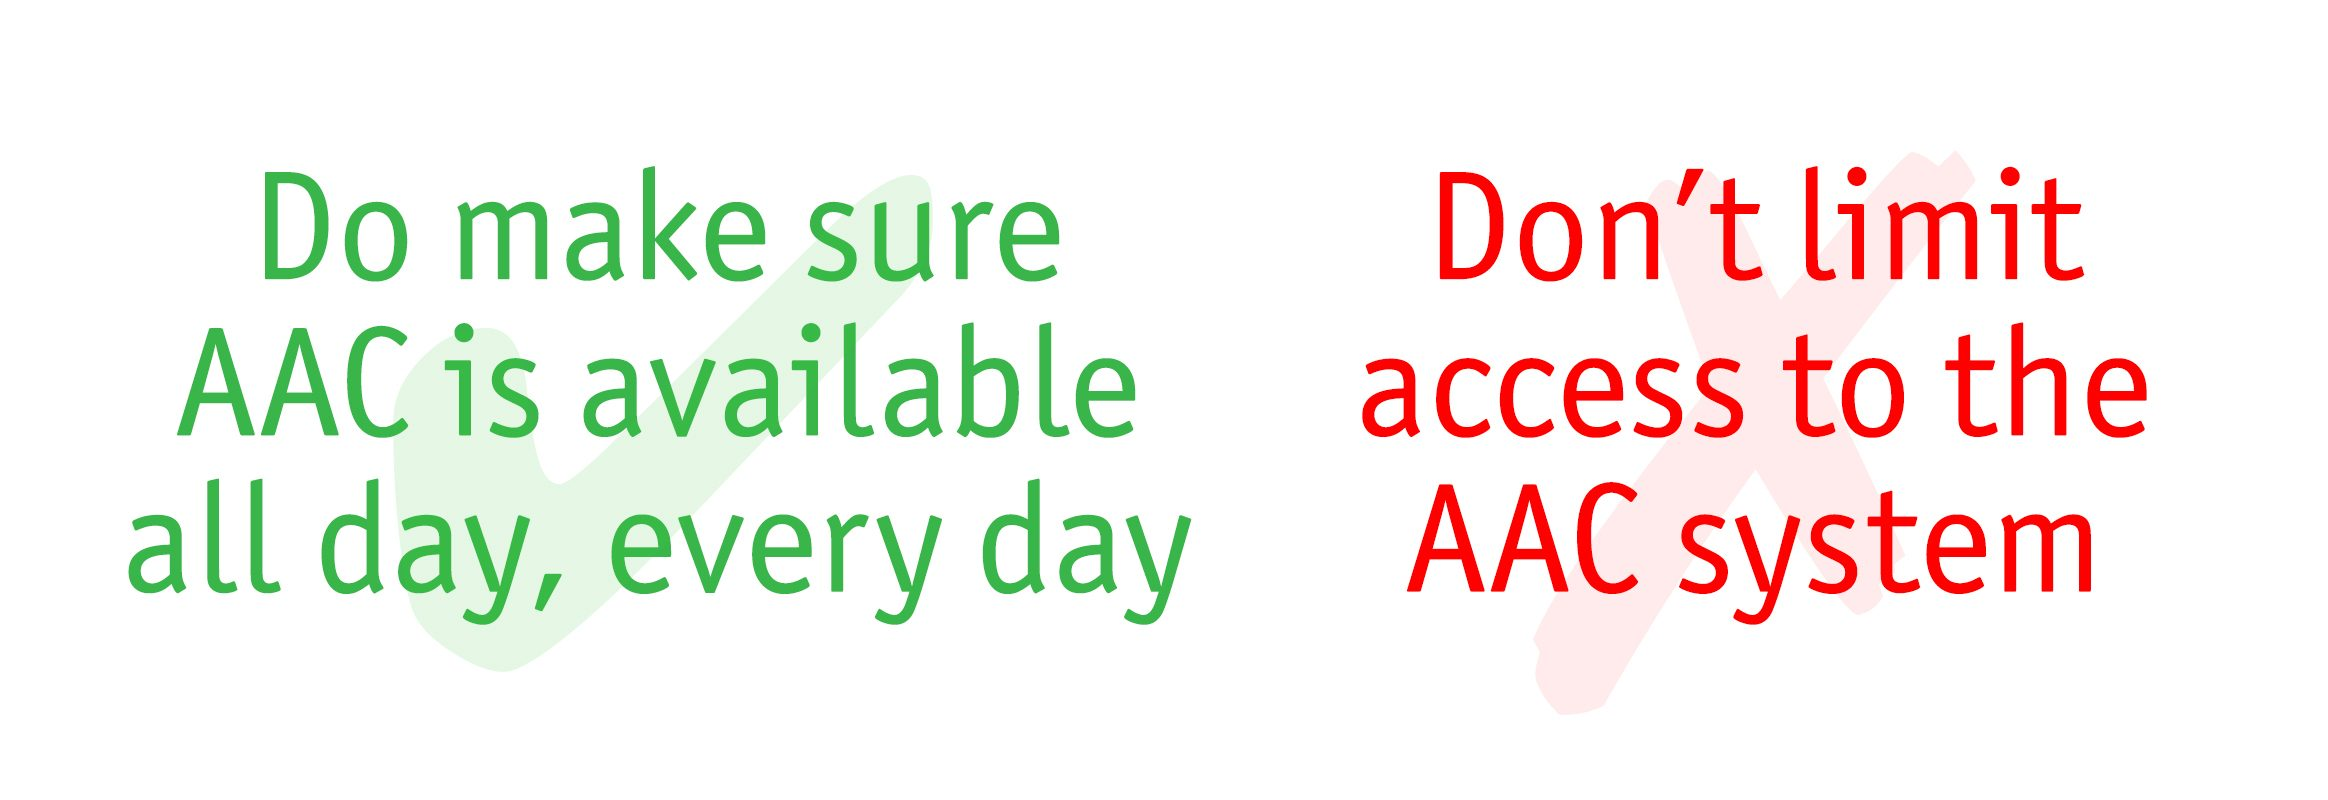 Do make sure AAC is available all, everyday. Don't limit access to the AAC system